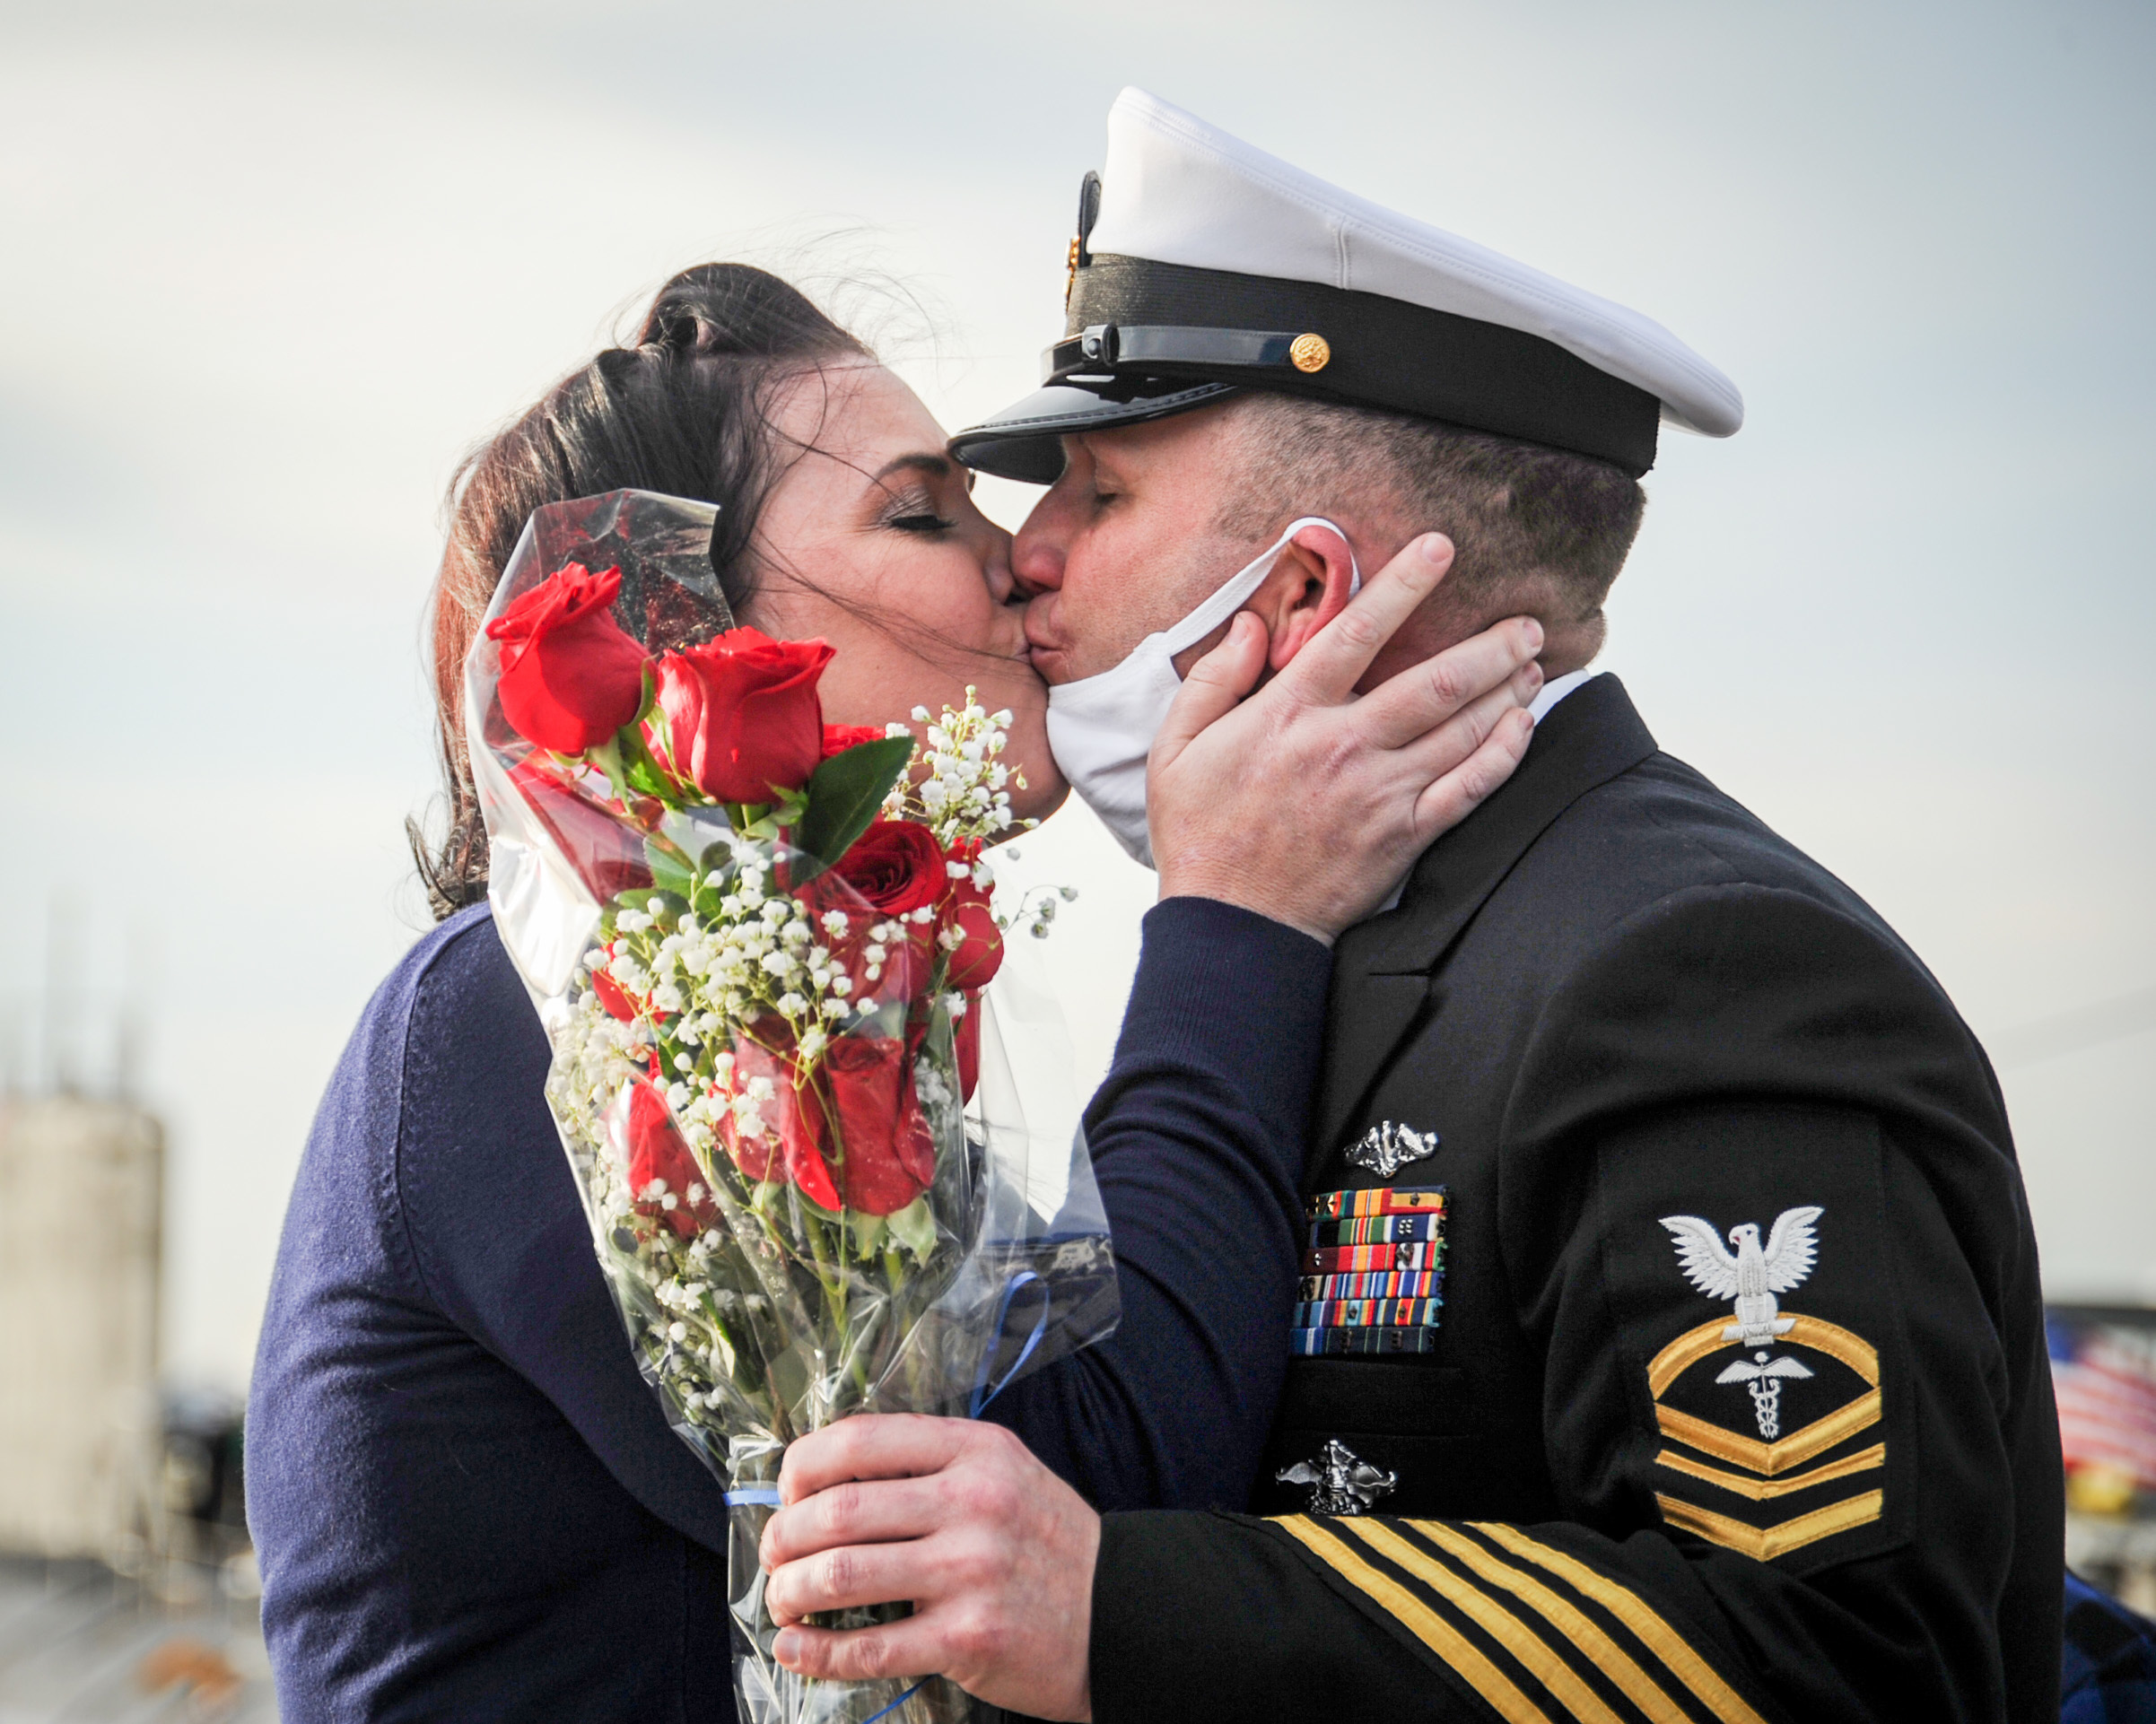 Chief Hospital Corpsman Dennis Sanders, assigned to the Virginia-class fast-attack submarine USS John Warner (SSN 785), kisses his wife, Lauren Sanders, during the boat's homecoming at Naval Station Norfolk, Nov. 25, 202